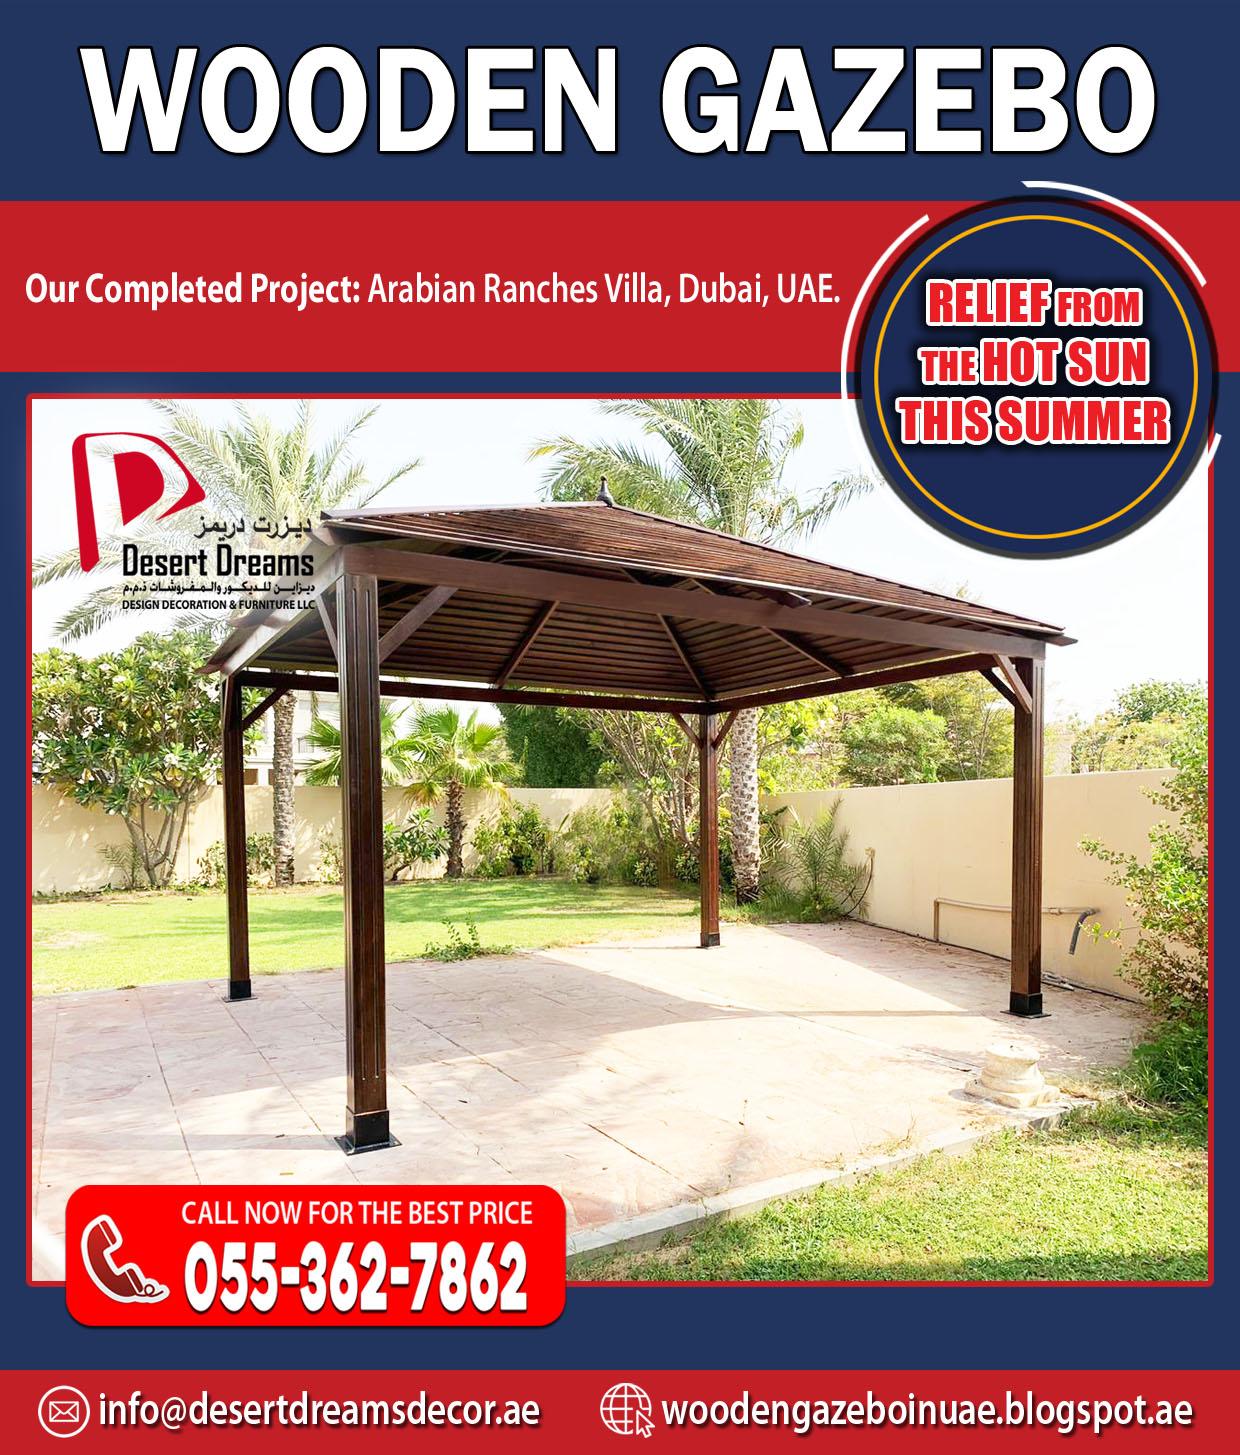 Wooden Gazebo in Dubai, UAE-1.jpg